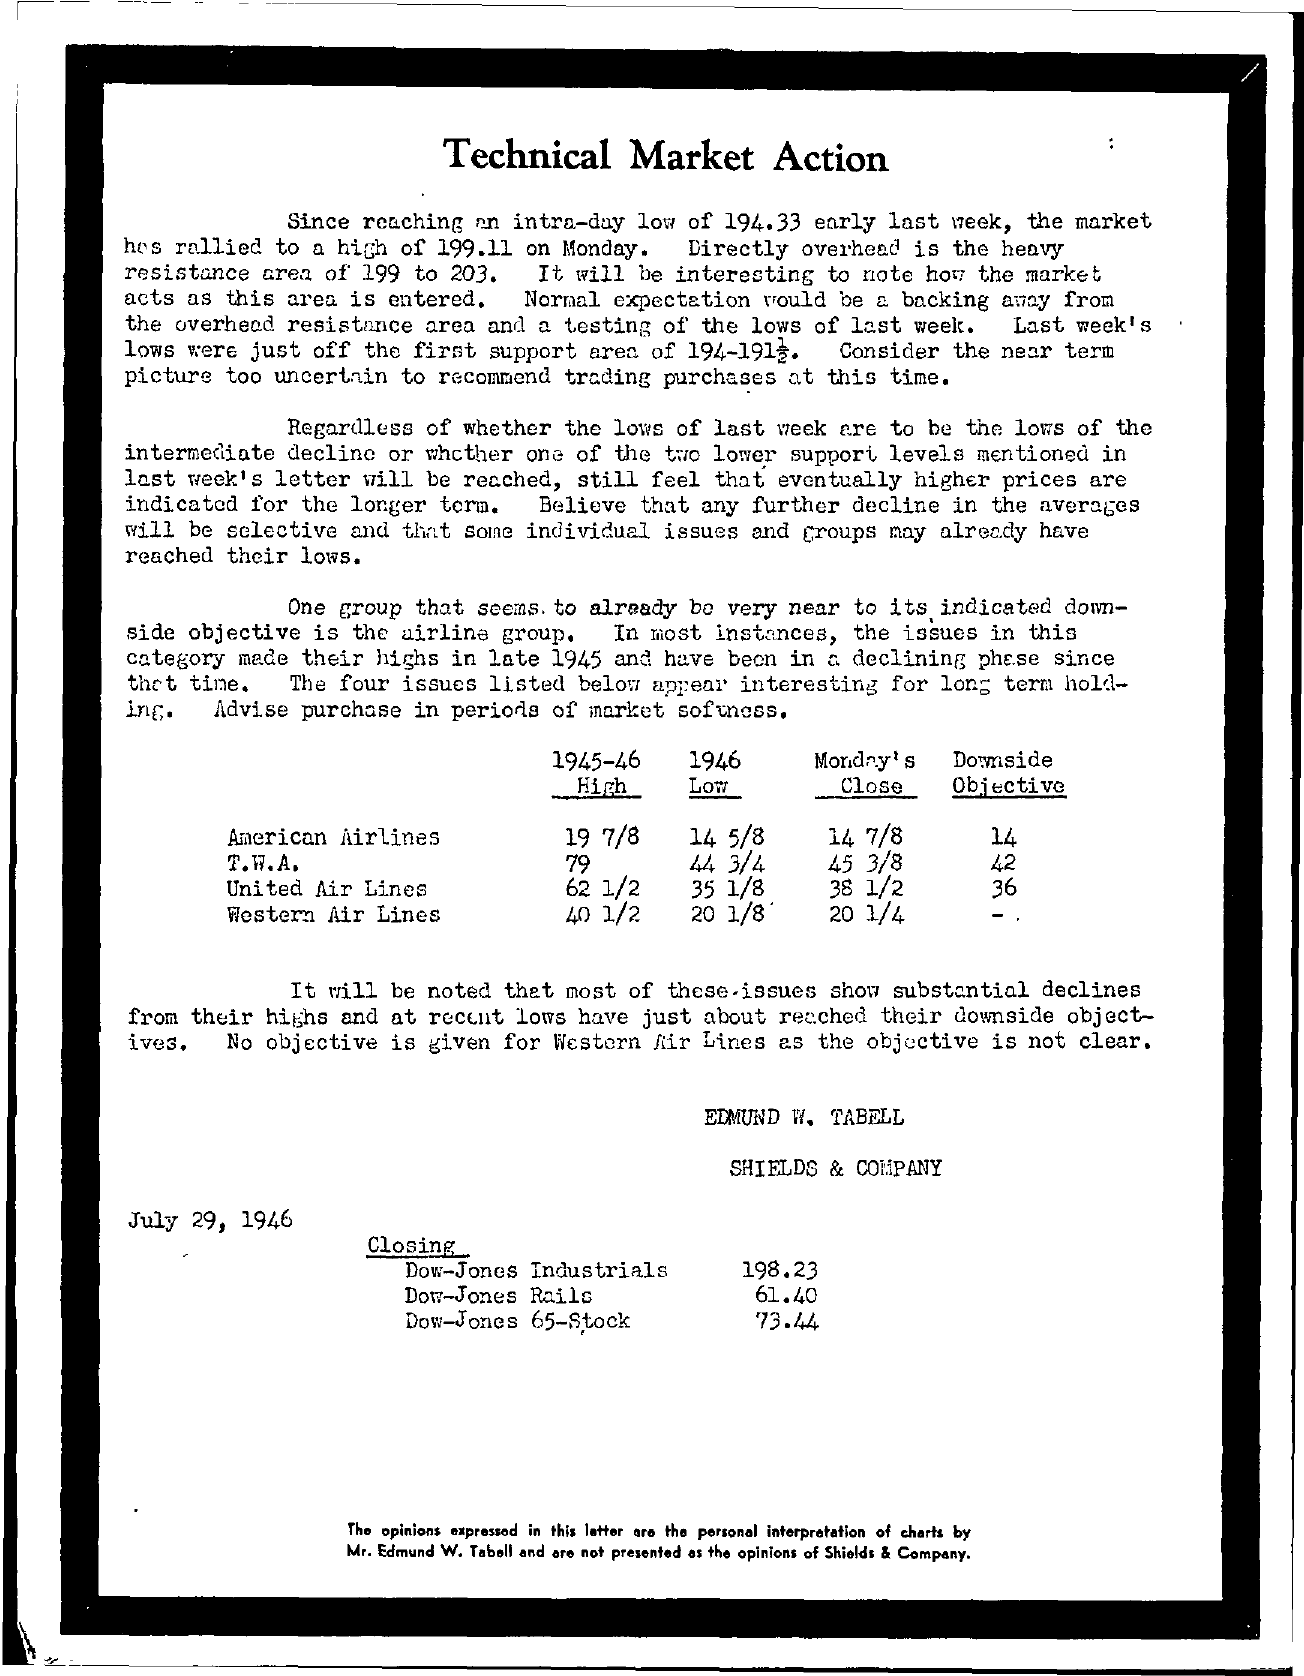 Tabell's Market Letter - July 29, 1946